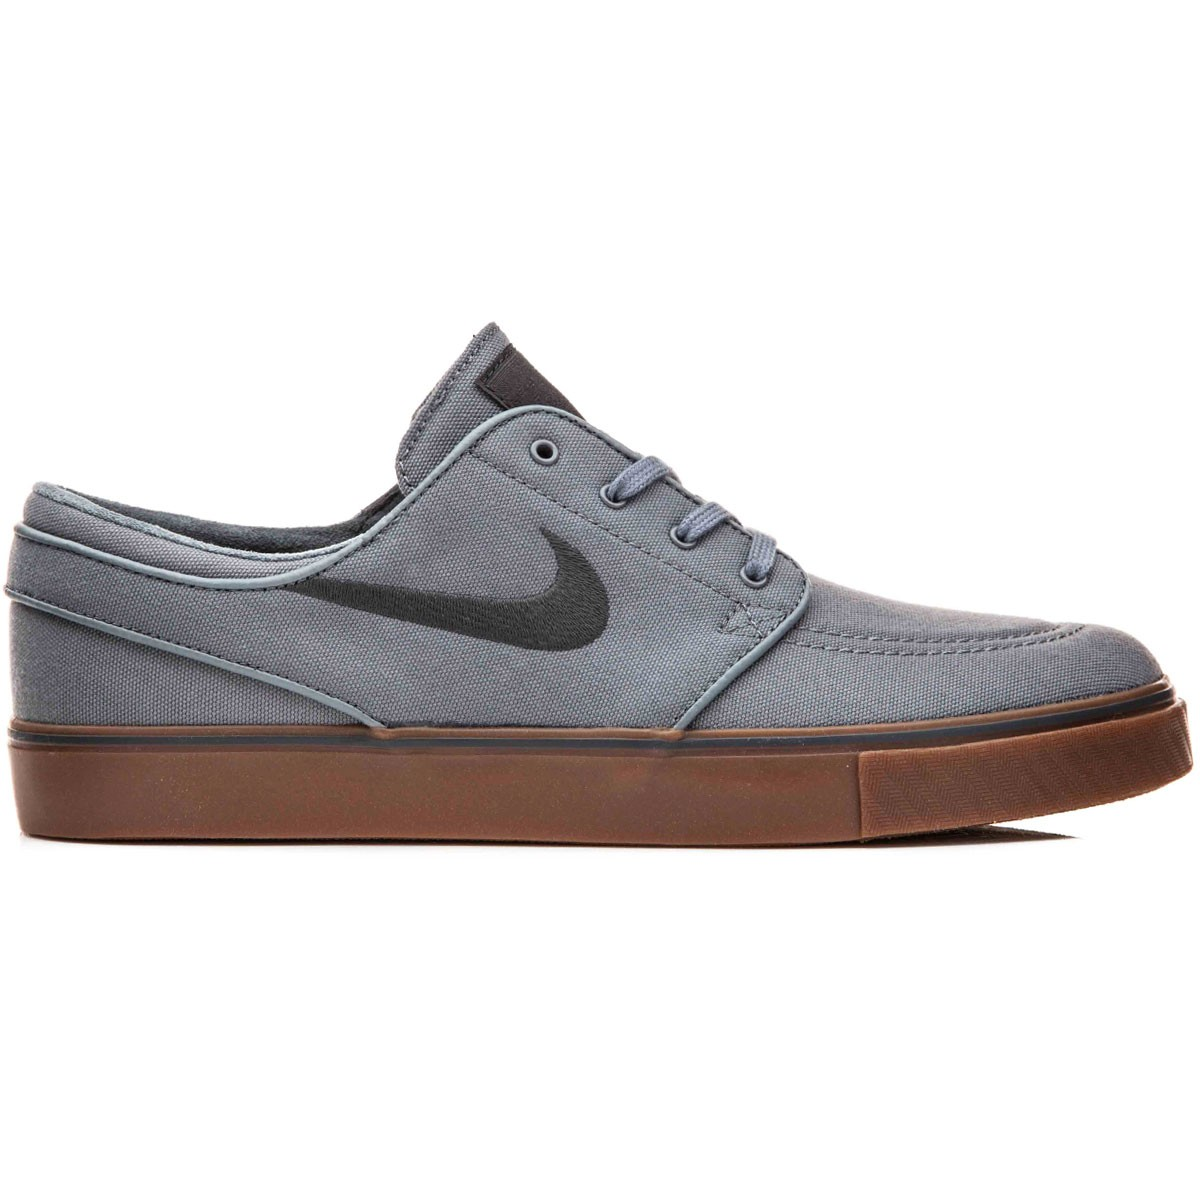 Nike Grey Shoes Brown Bottoms